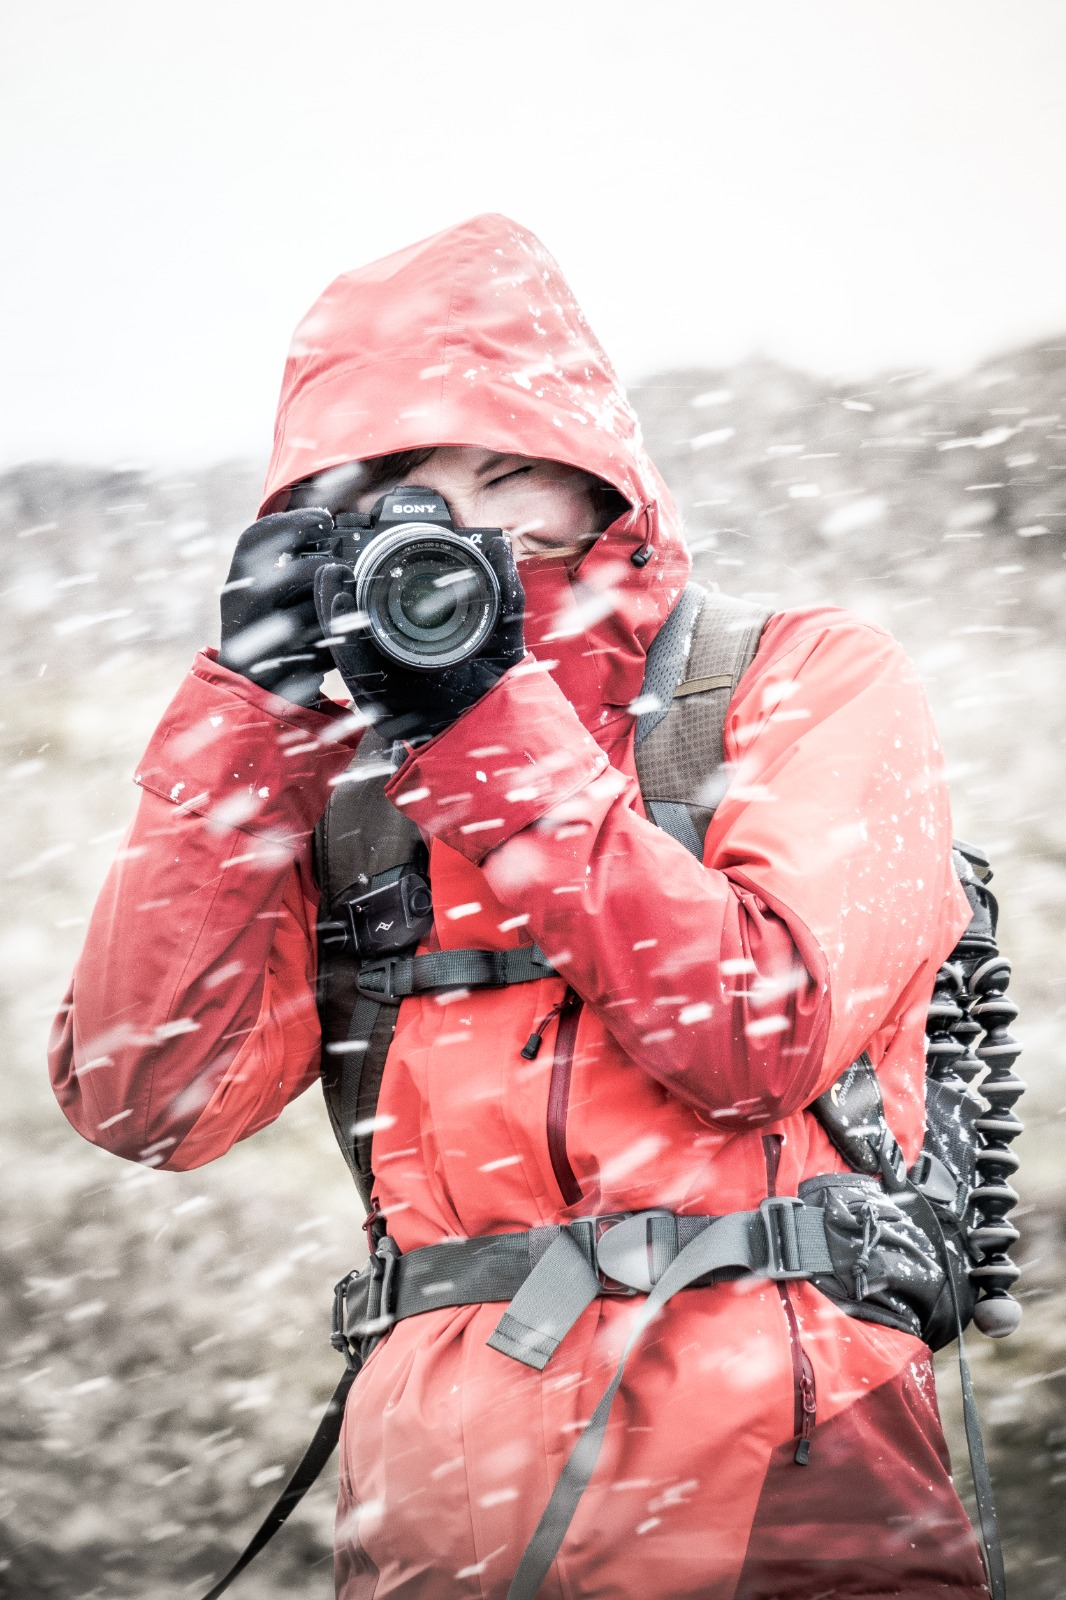 A photographer (Enna Bartlett) in a red coat stands with a camera to her eye while taking a picture in a snowstorm.